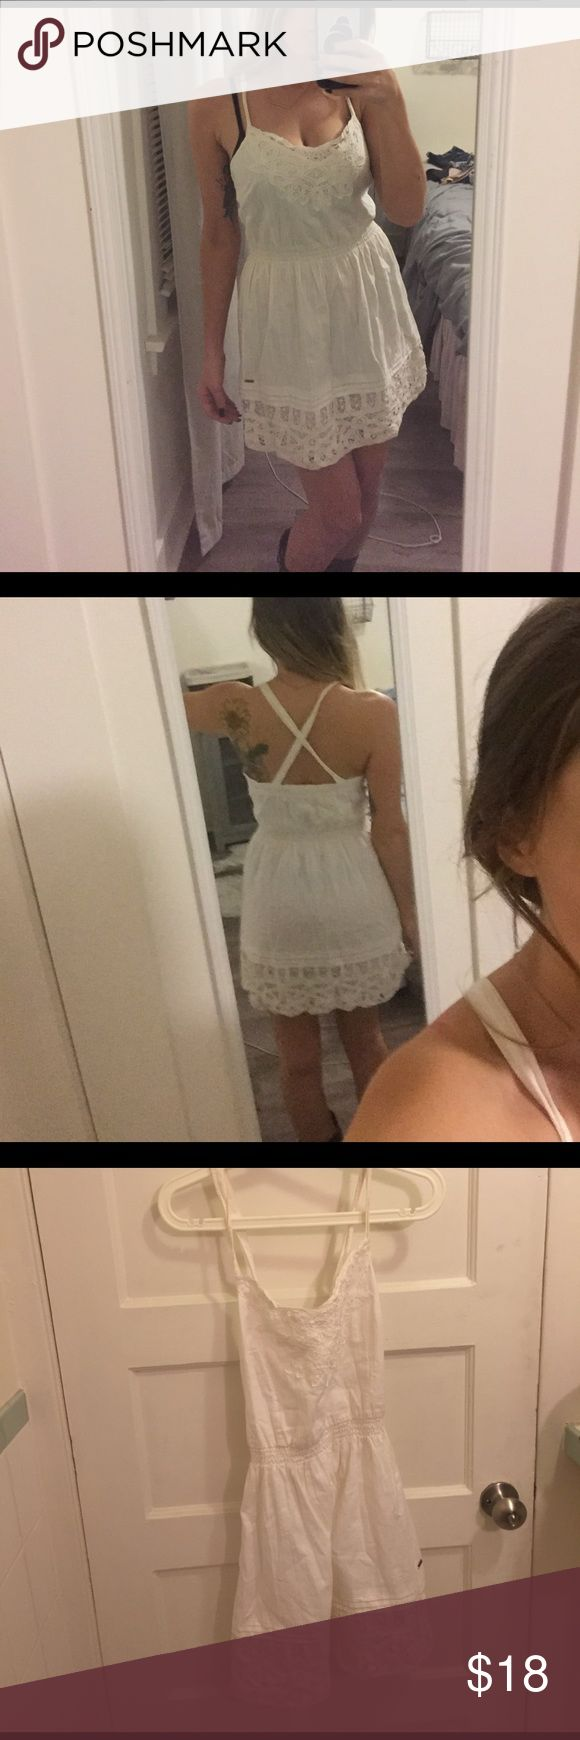 Lace Hollister Dress Really cute white lace dress from Hollister. Not see through at all. Cross back. Slight discoloration on straps but won't even show up in photo. Hollister Dresses